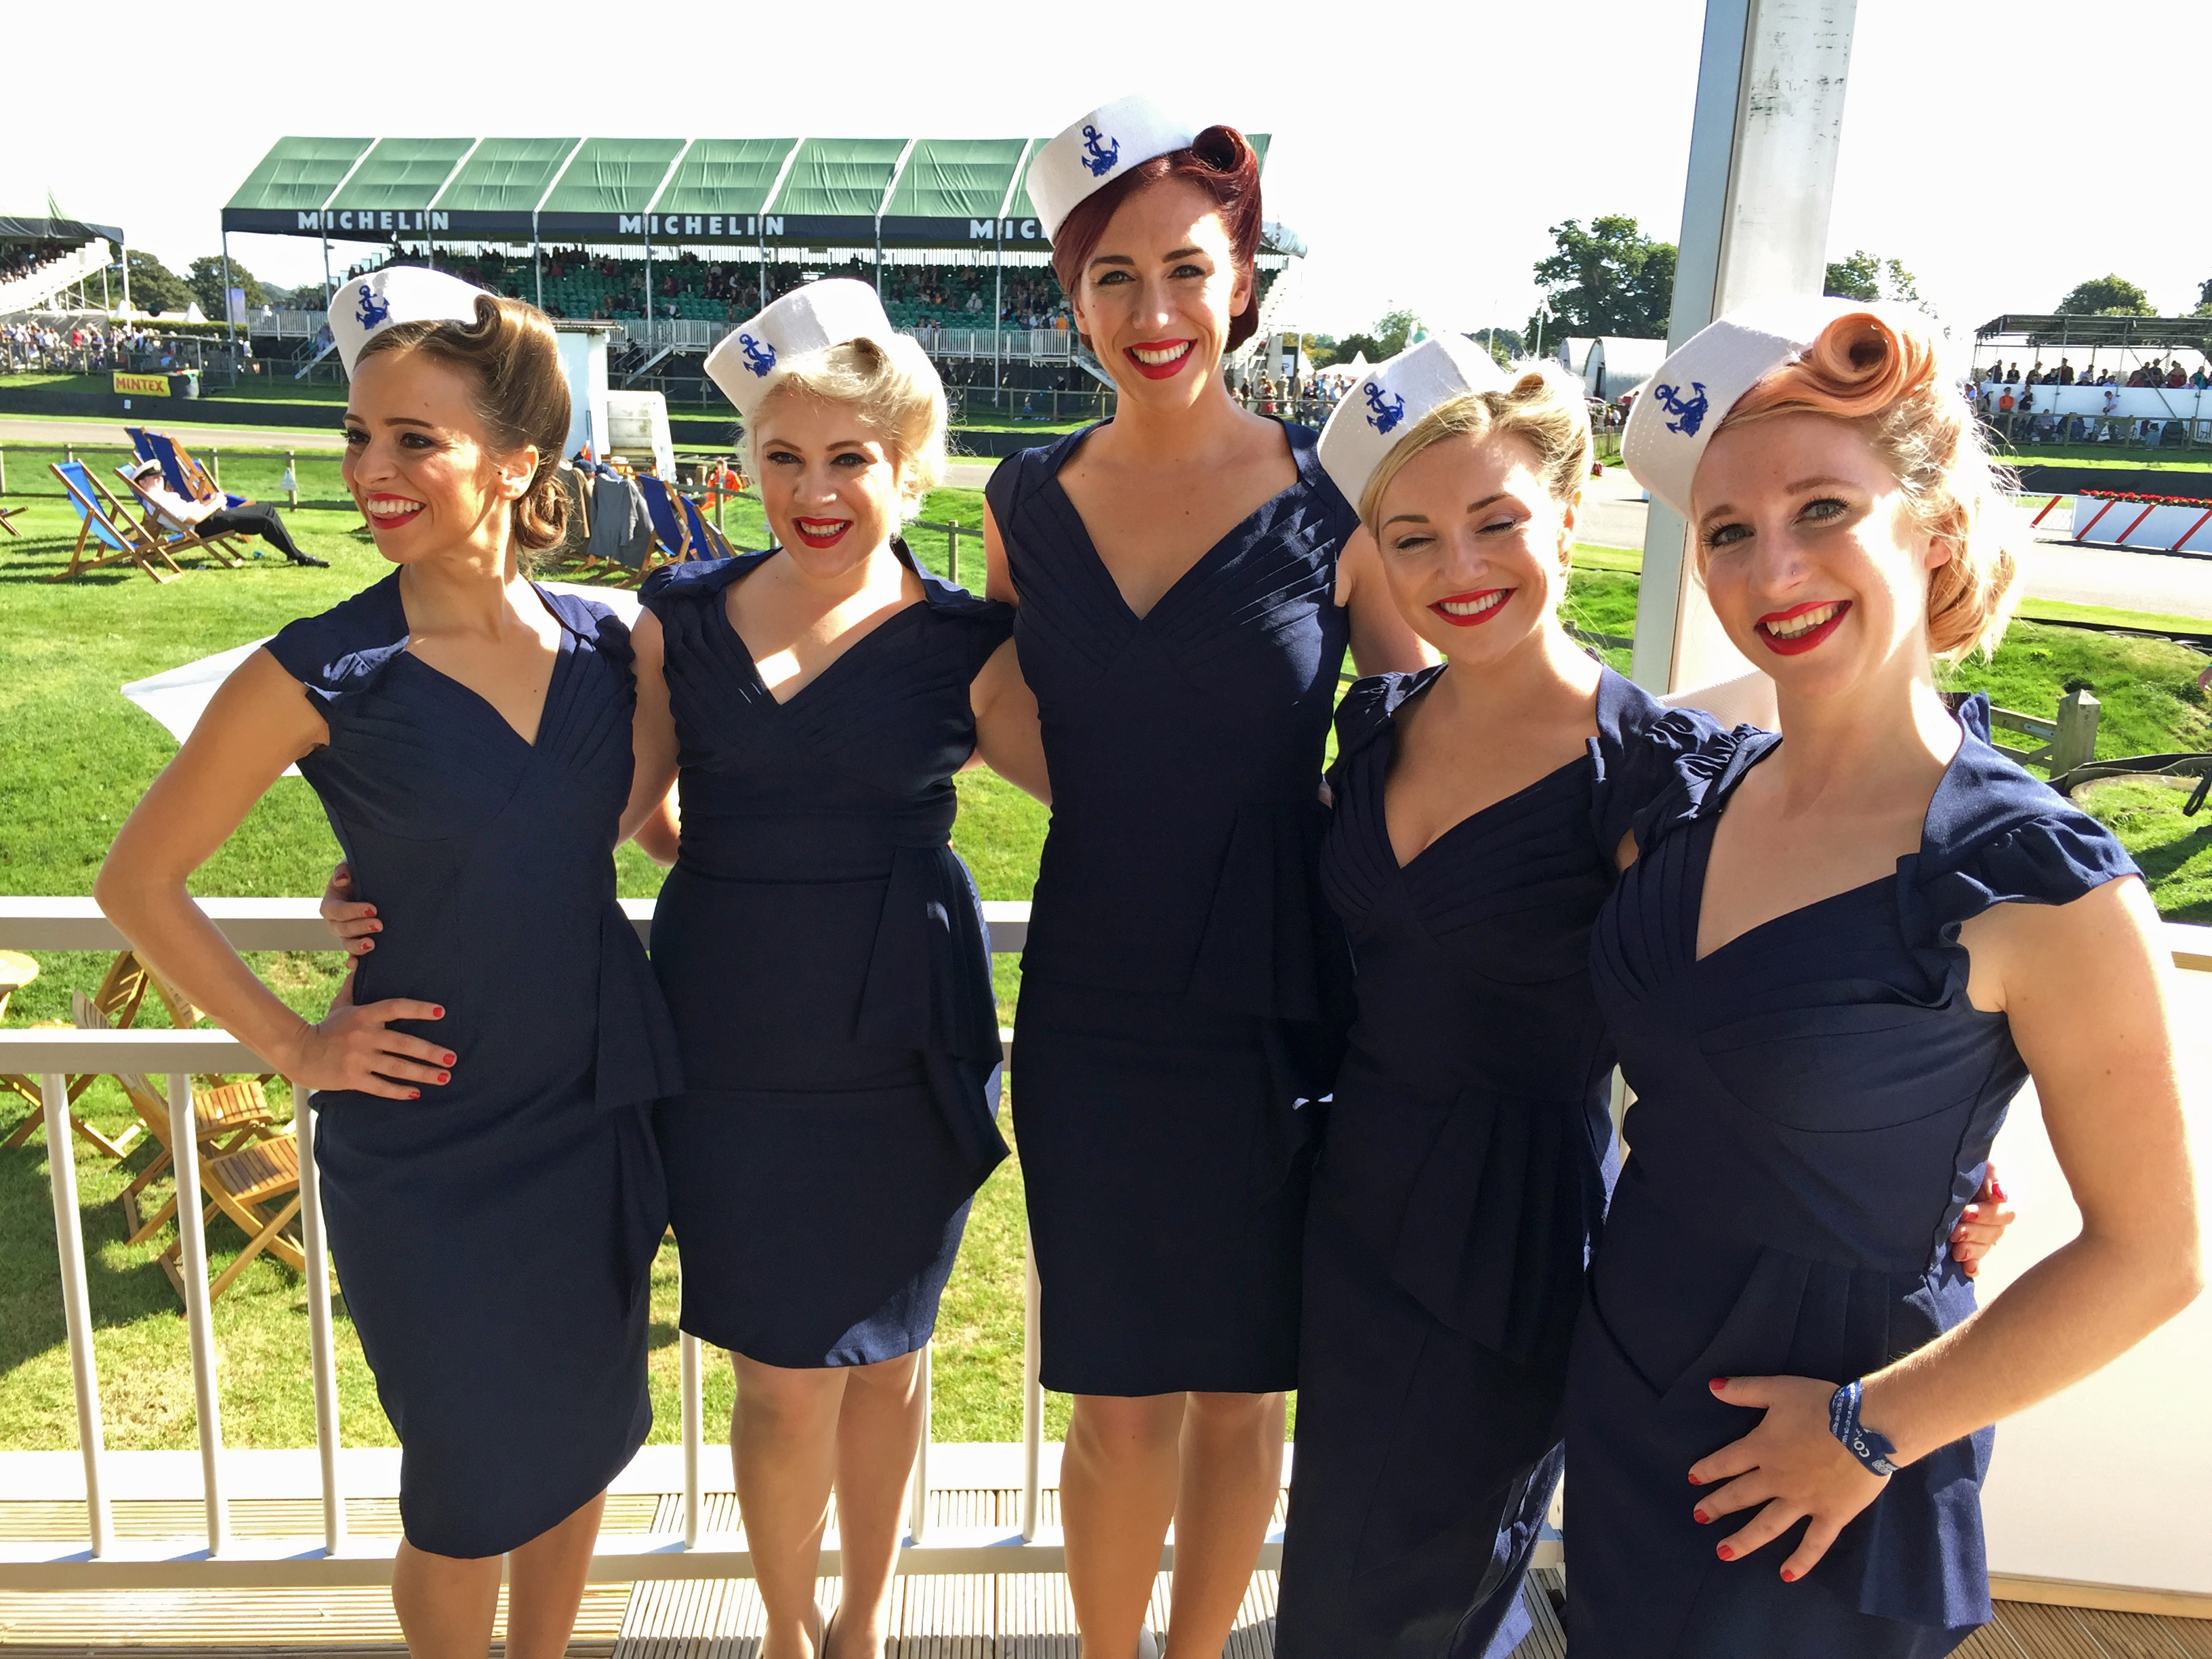 2016 Goodwood Revival Classic Ladies